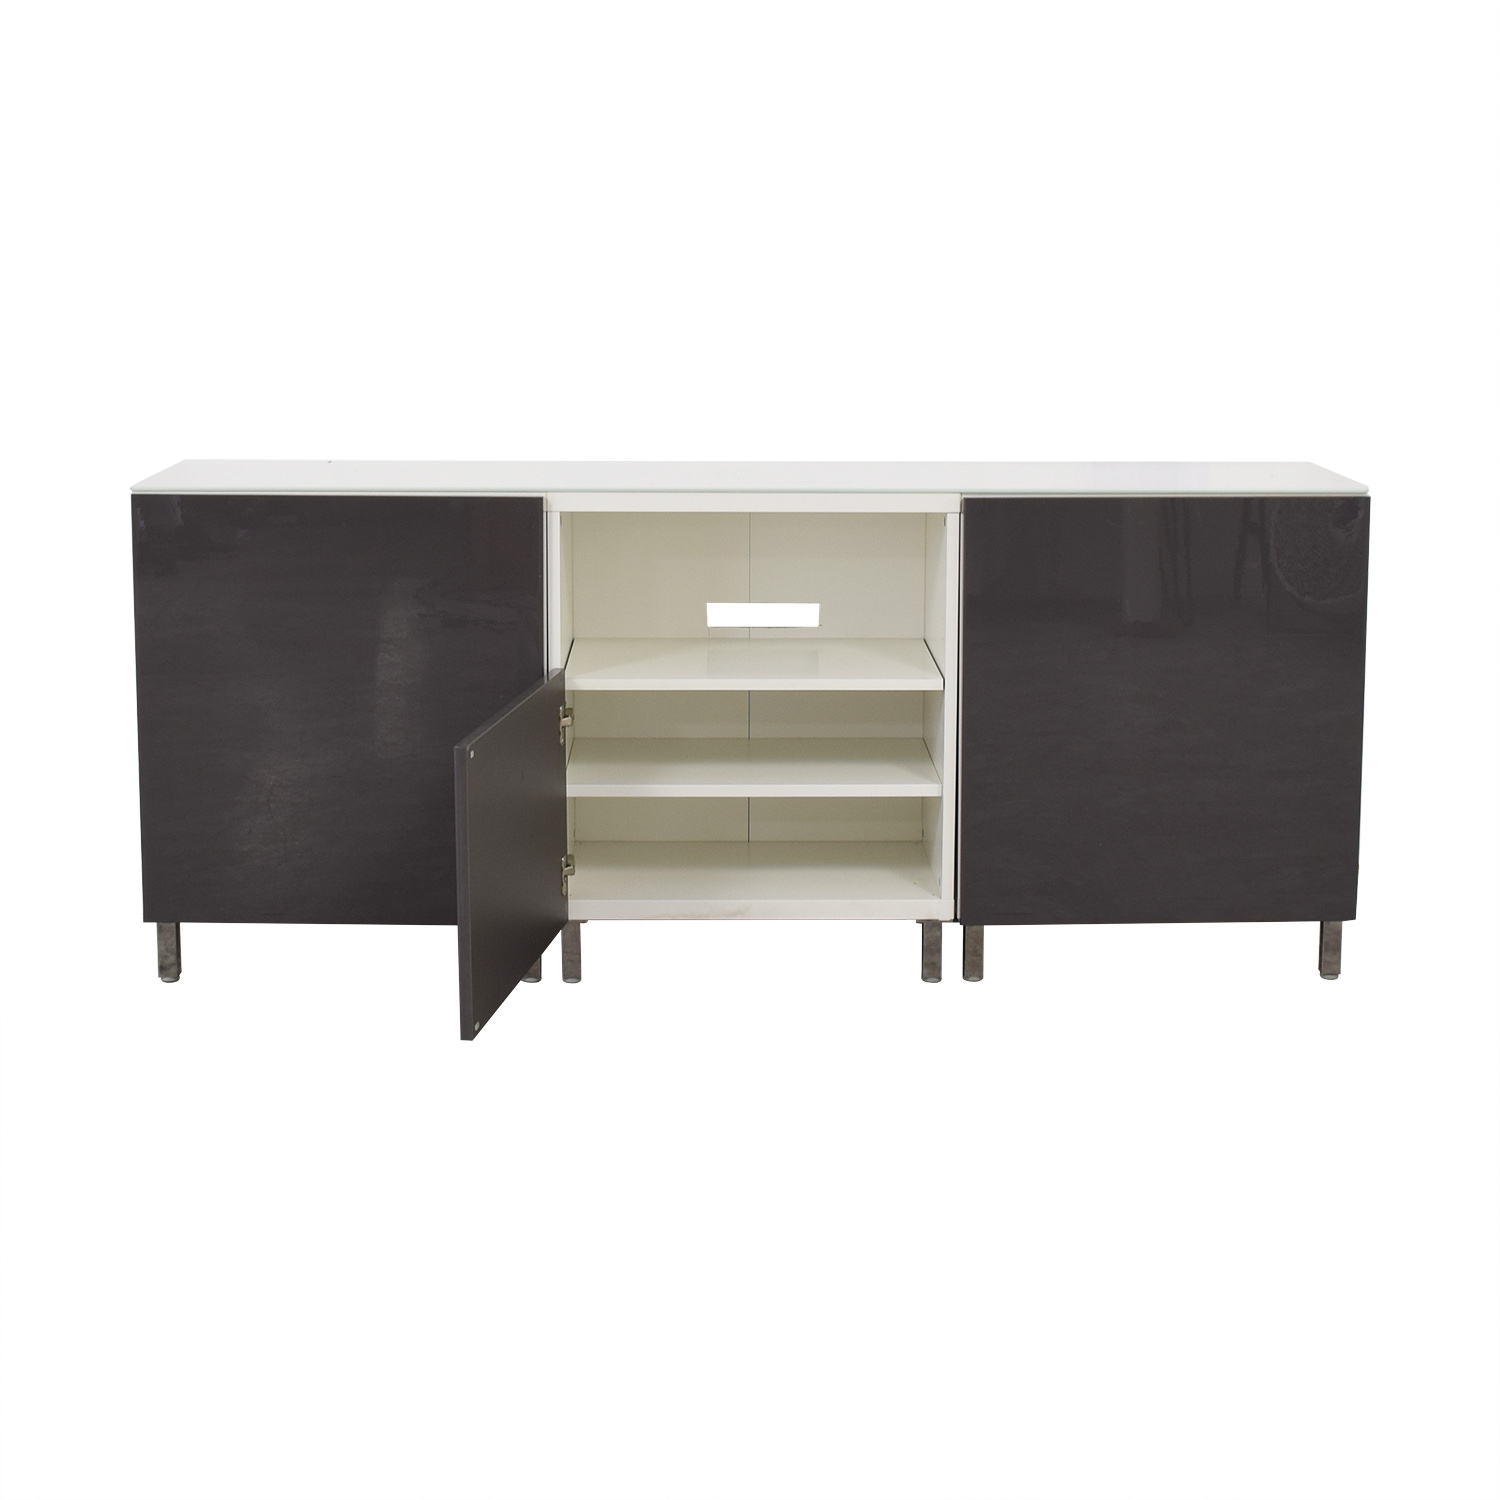 52 off ikea ikea tv stand storage. Black Bedroom Furniture Sets. Home Design Ideas